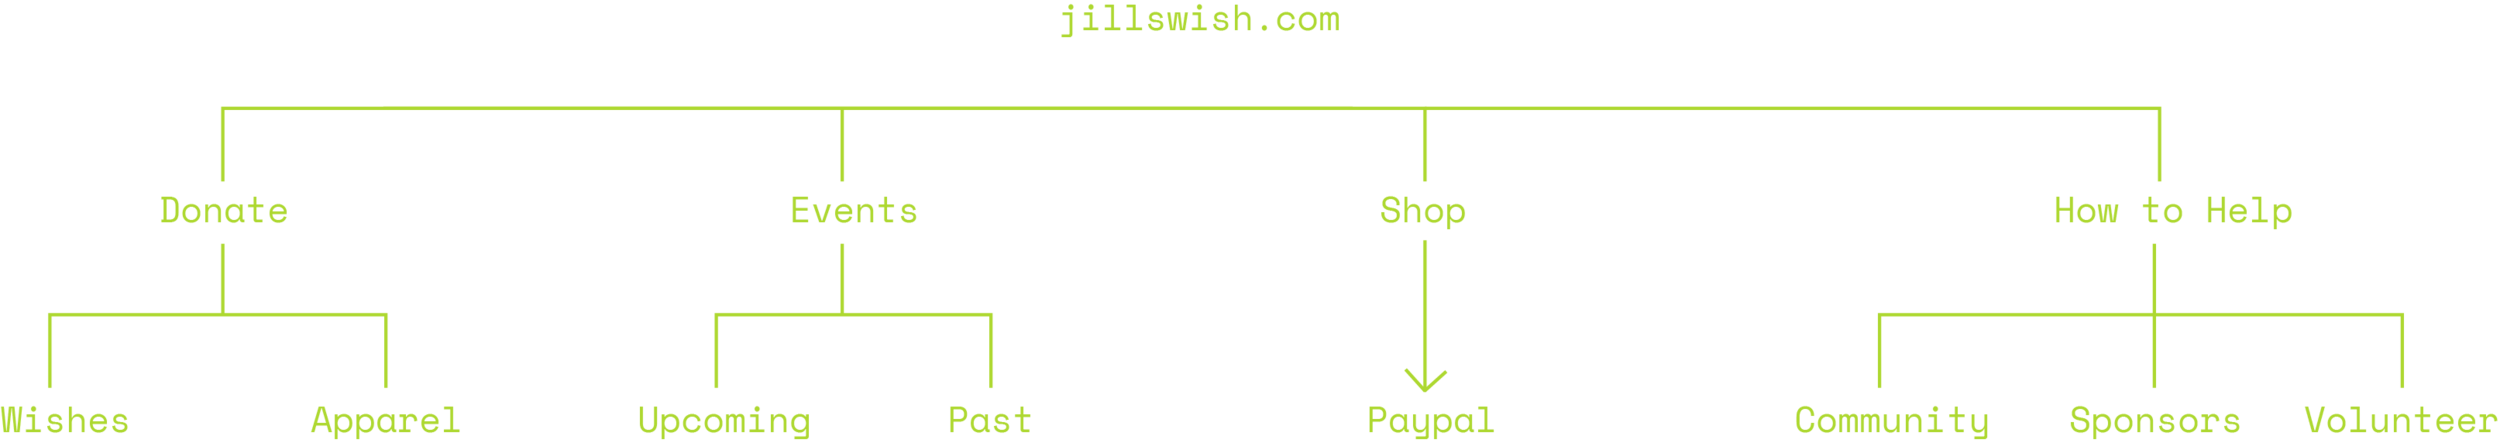 Jill's Wish Sitemap_New.png